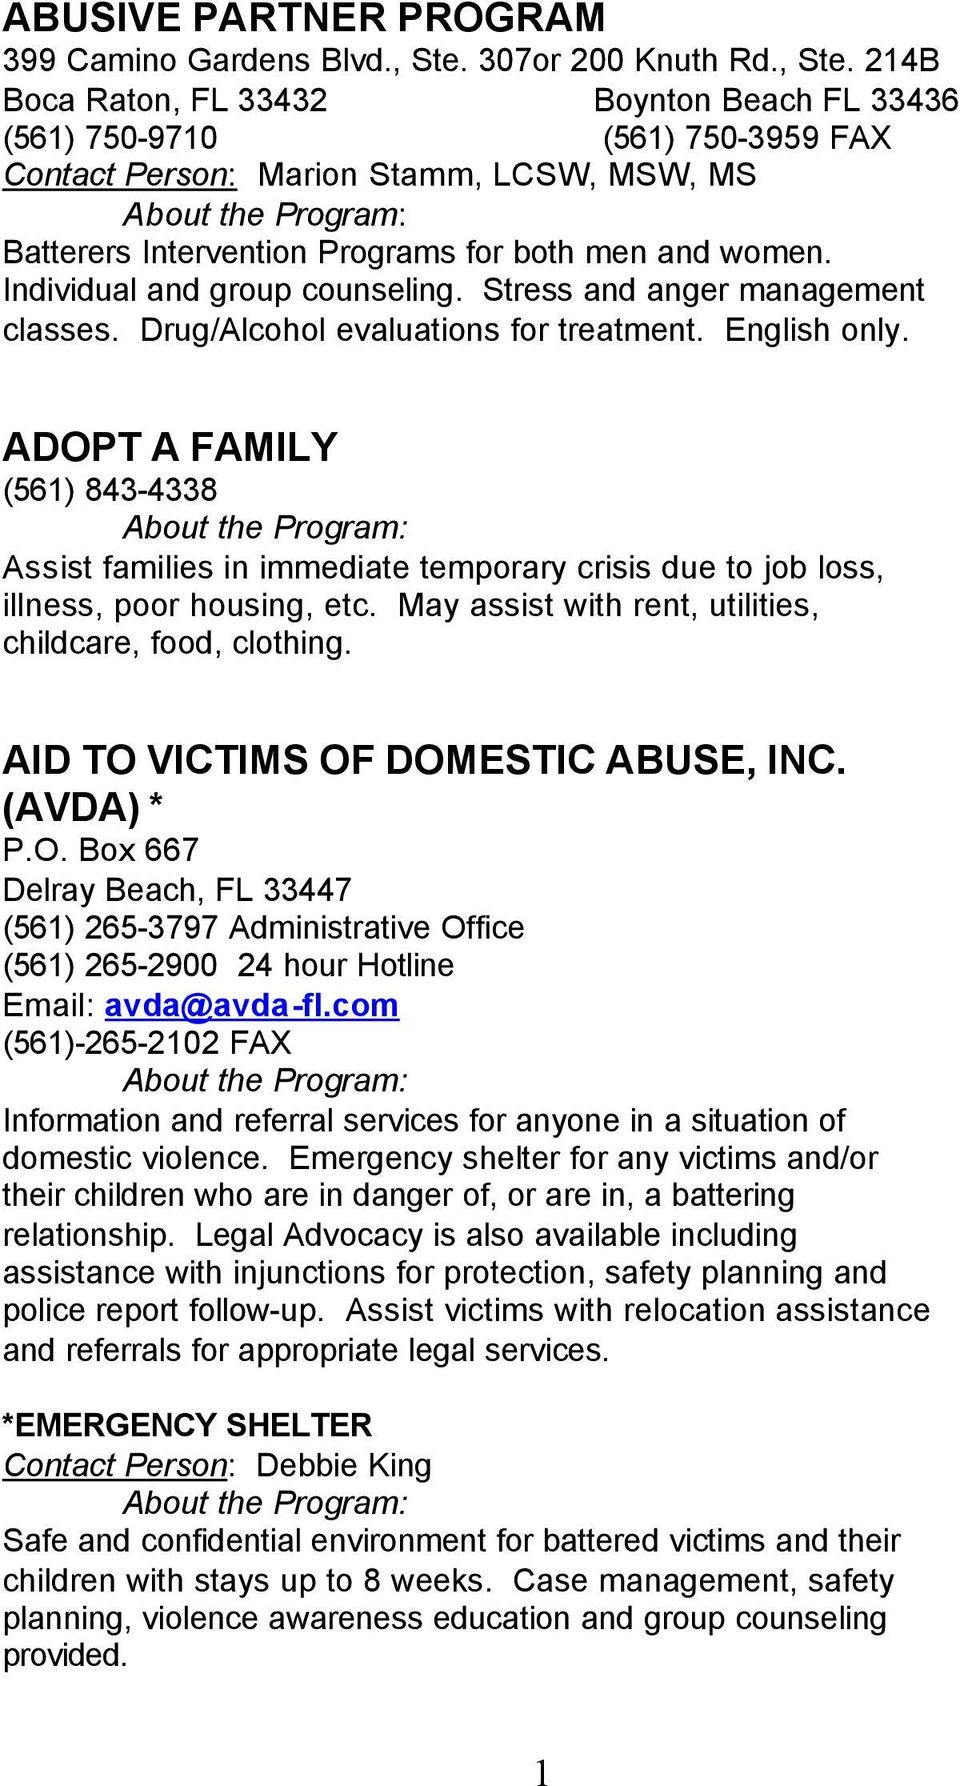 214B Boca Raton, FL 33432 Boynton Beach FL 33436 (561) 750-9710 (561) 750-3959 FAX Contact Person: Marion Stamm, LCSW, MSW, MS Batterers Intervention Programs for both men and women.